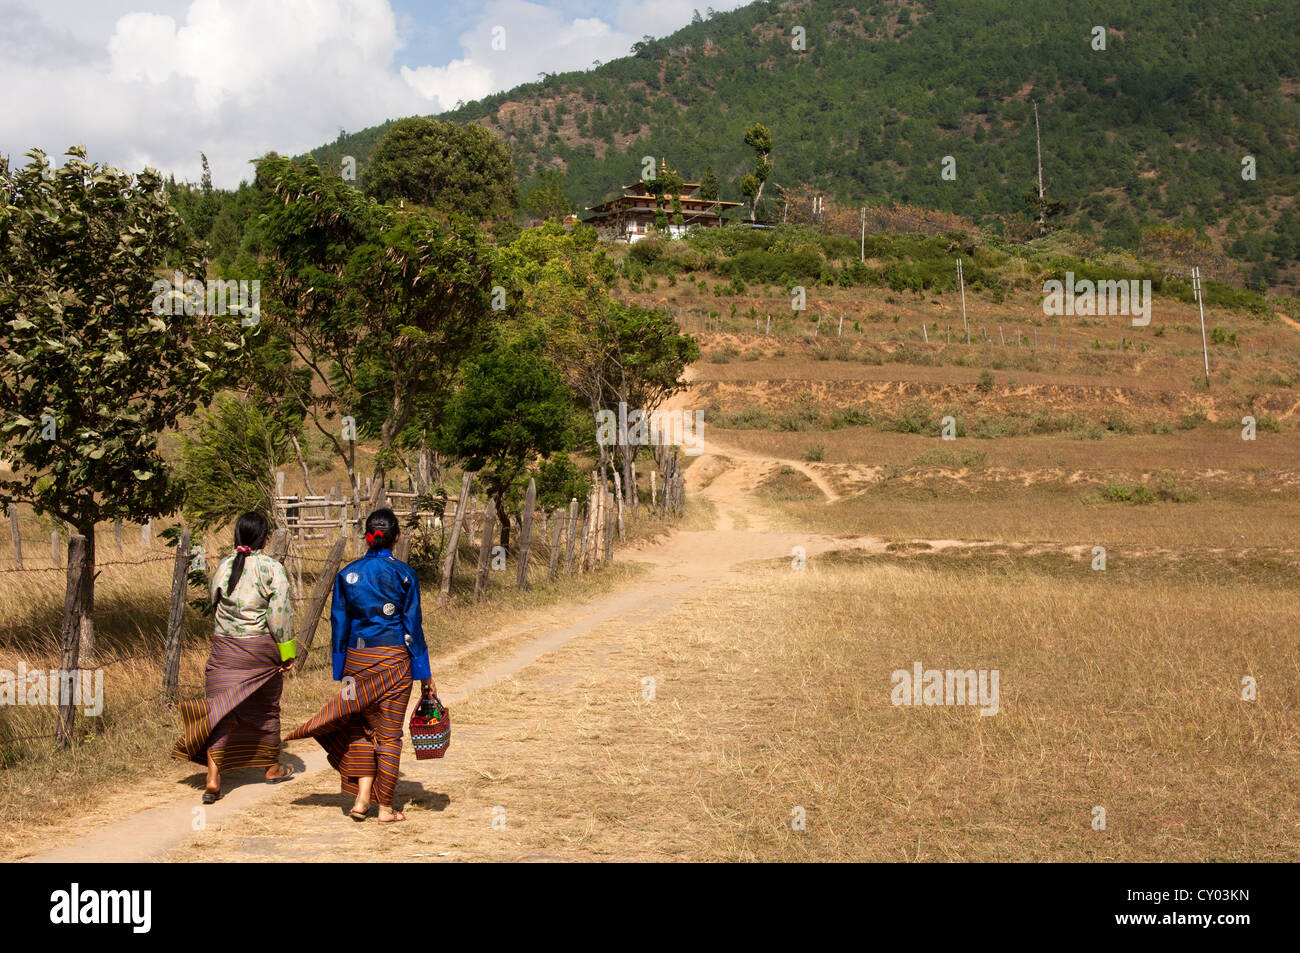 Two women in national dress on the way to the Chimi Lhakhang fertility temple, Lobesa, Bhutan, South Asia - Stock Image